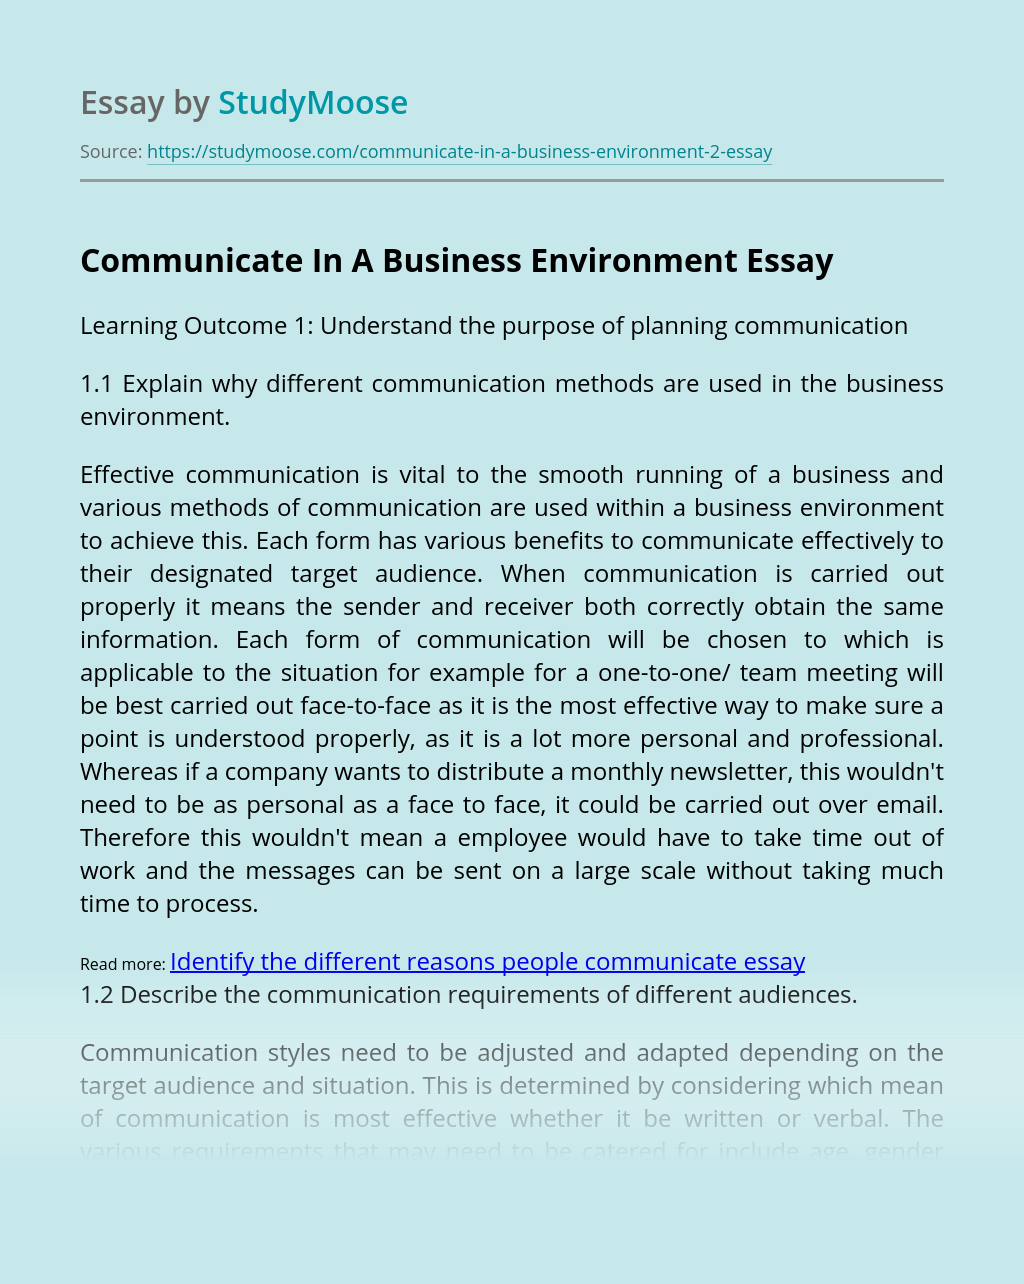 Communicate In A Business Environment